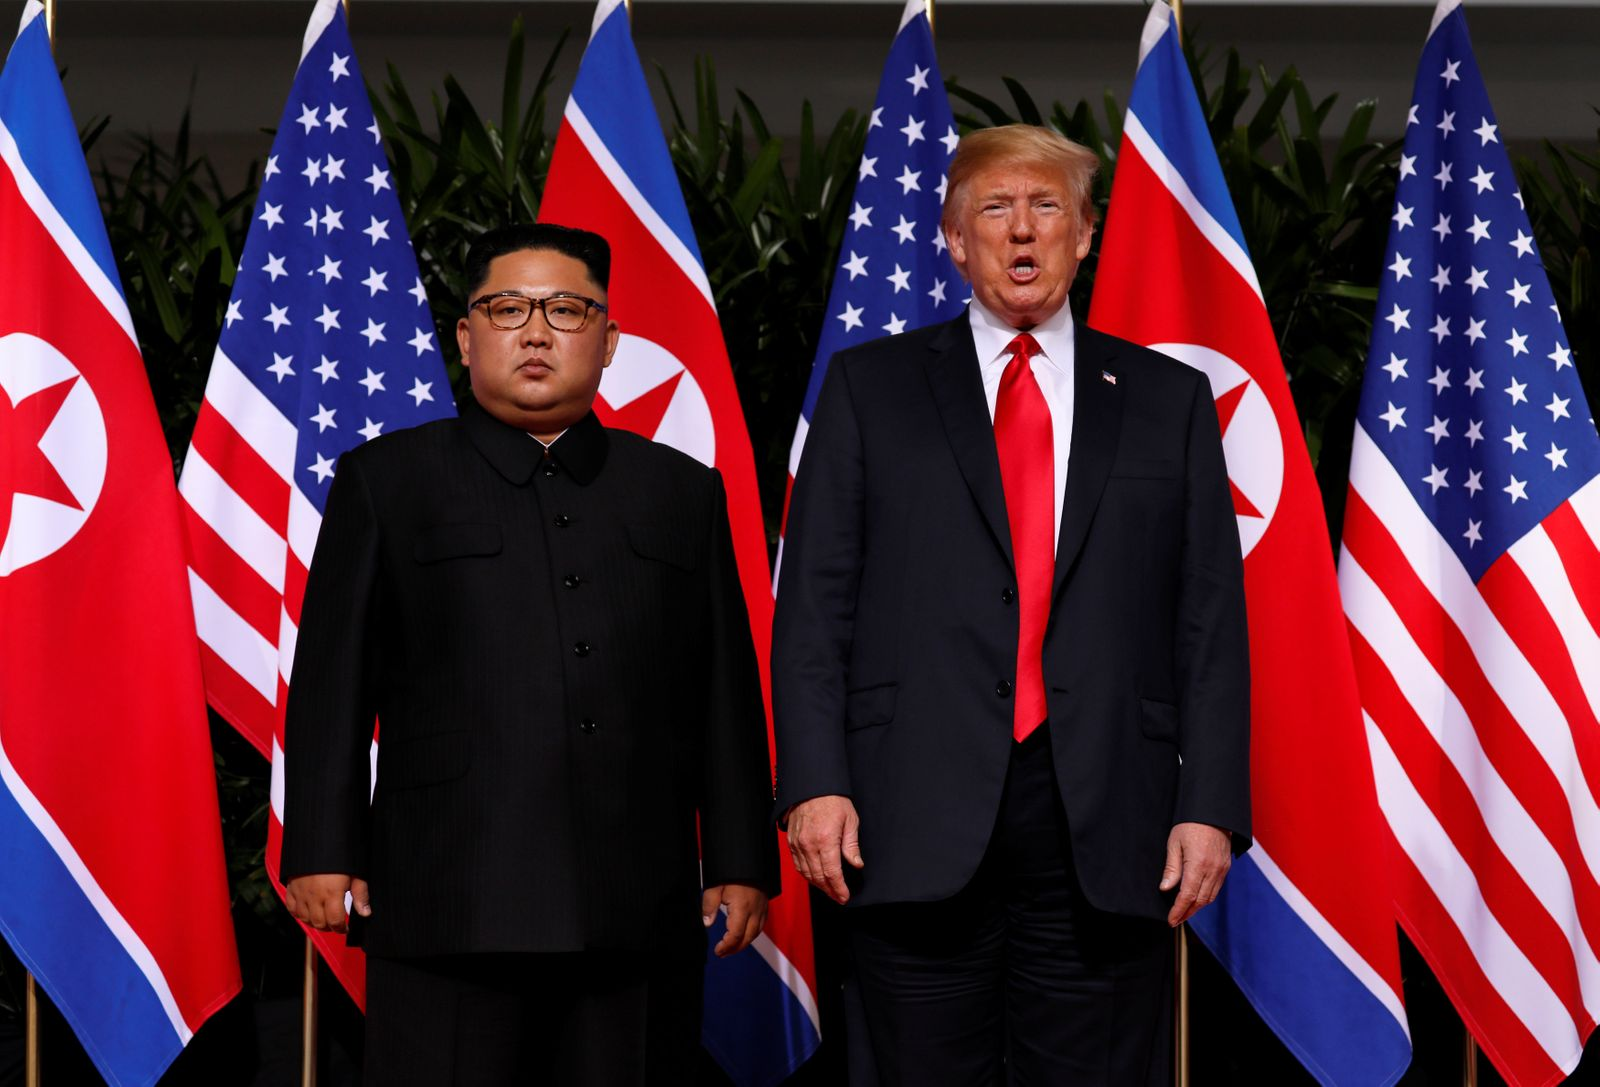 North Korea's leader Kim Jong Un stands next to U.S. President Donald Trump before their meeting in Singapore